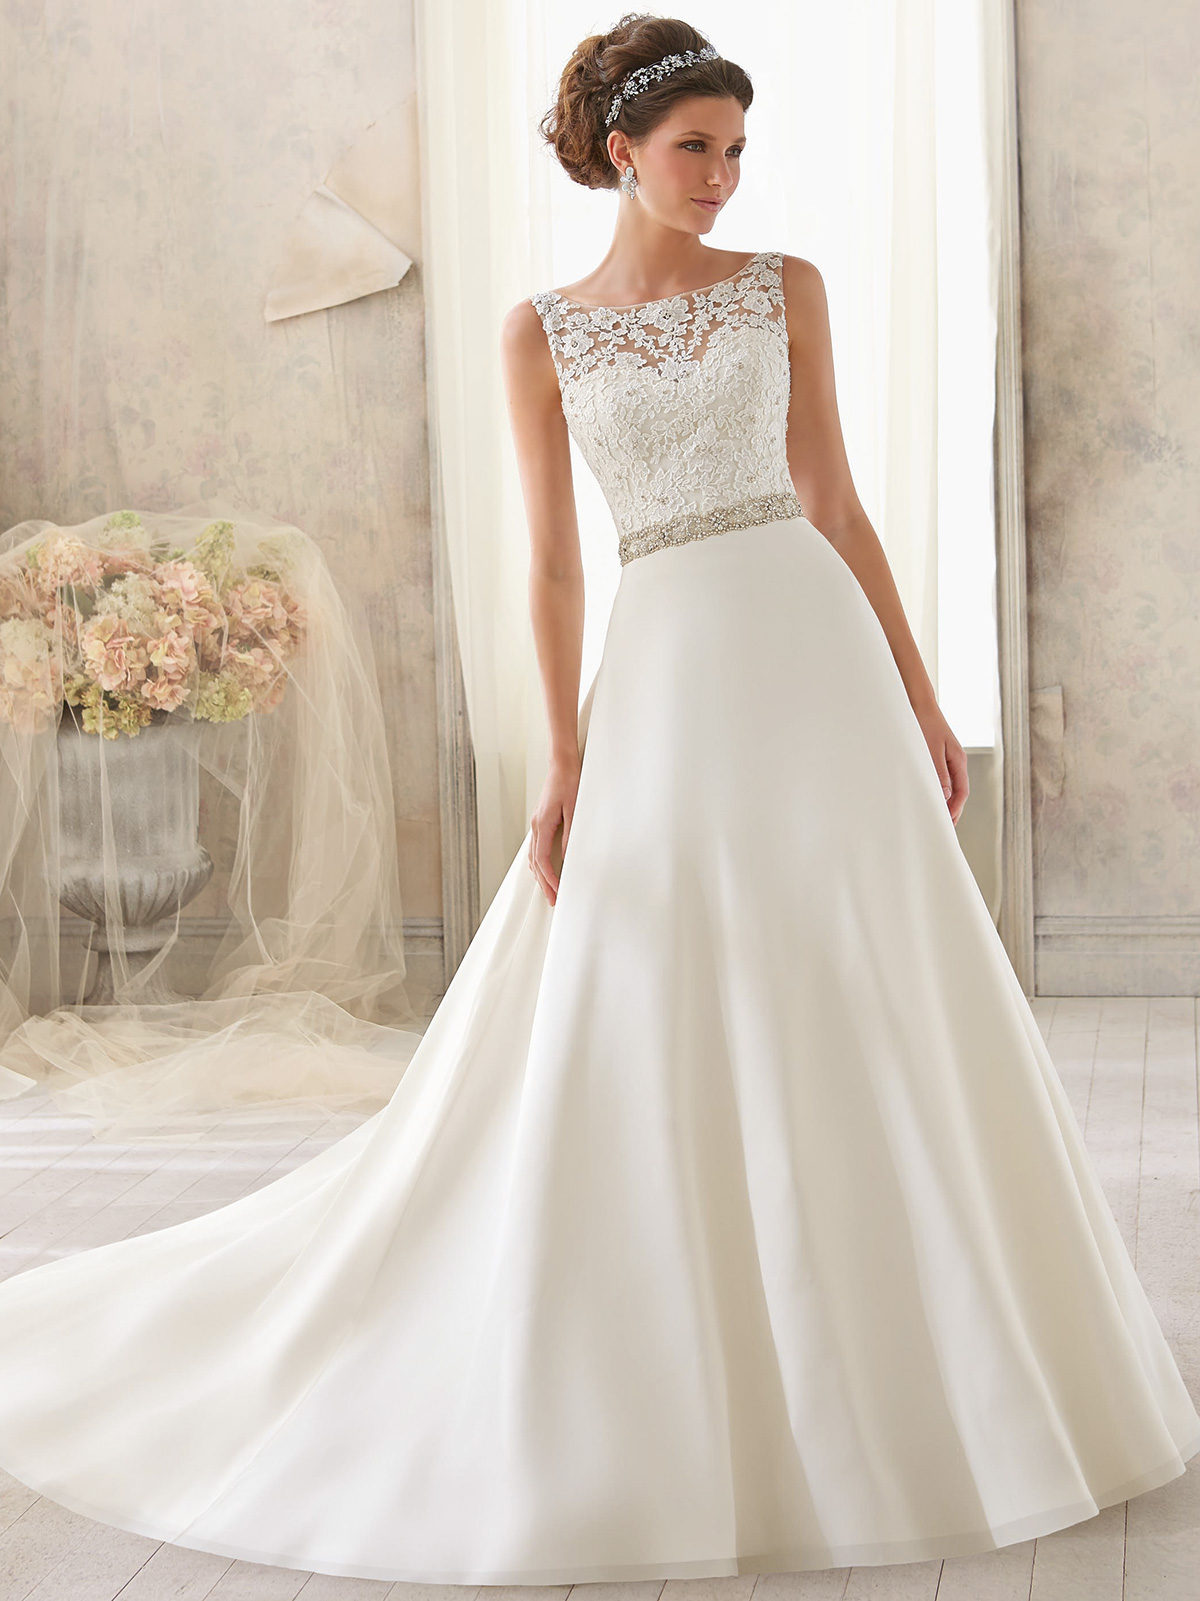 Mori lee blu bridal dress 5204 for Mori lee wedding dresses